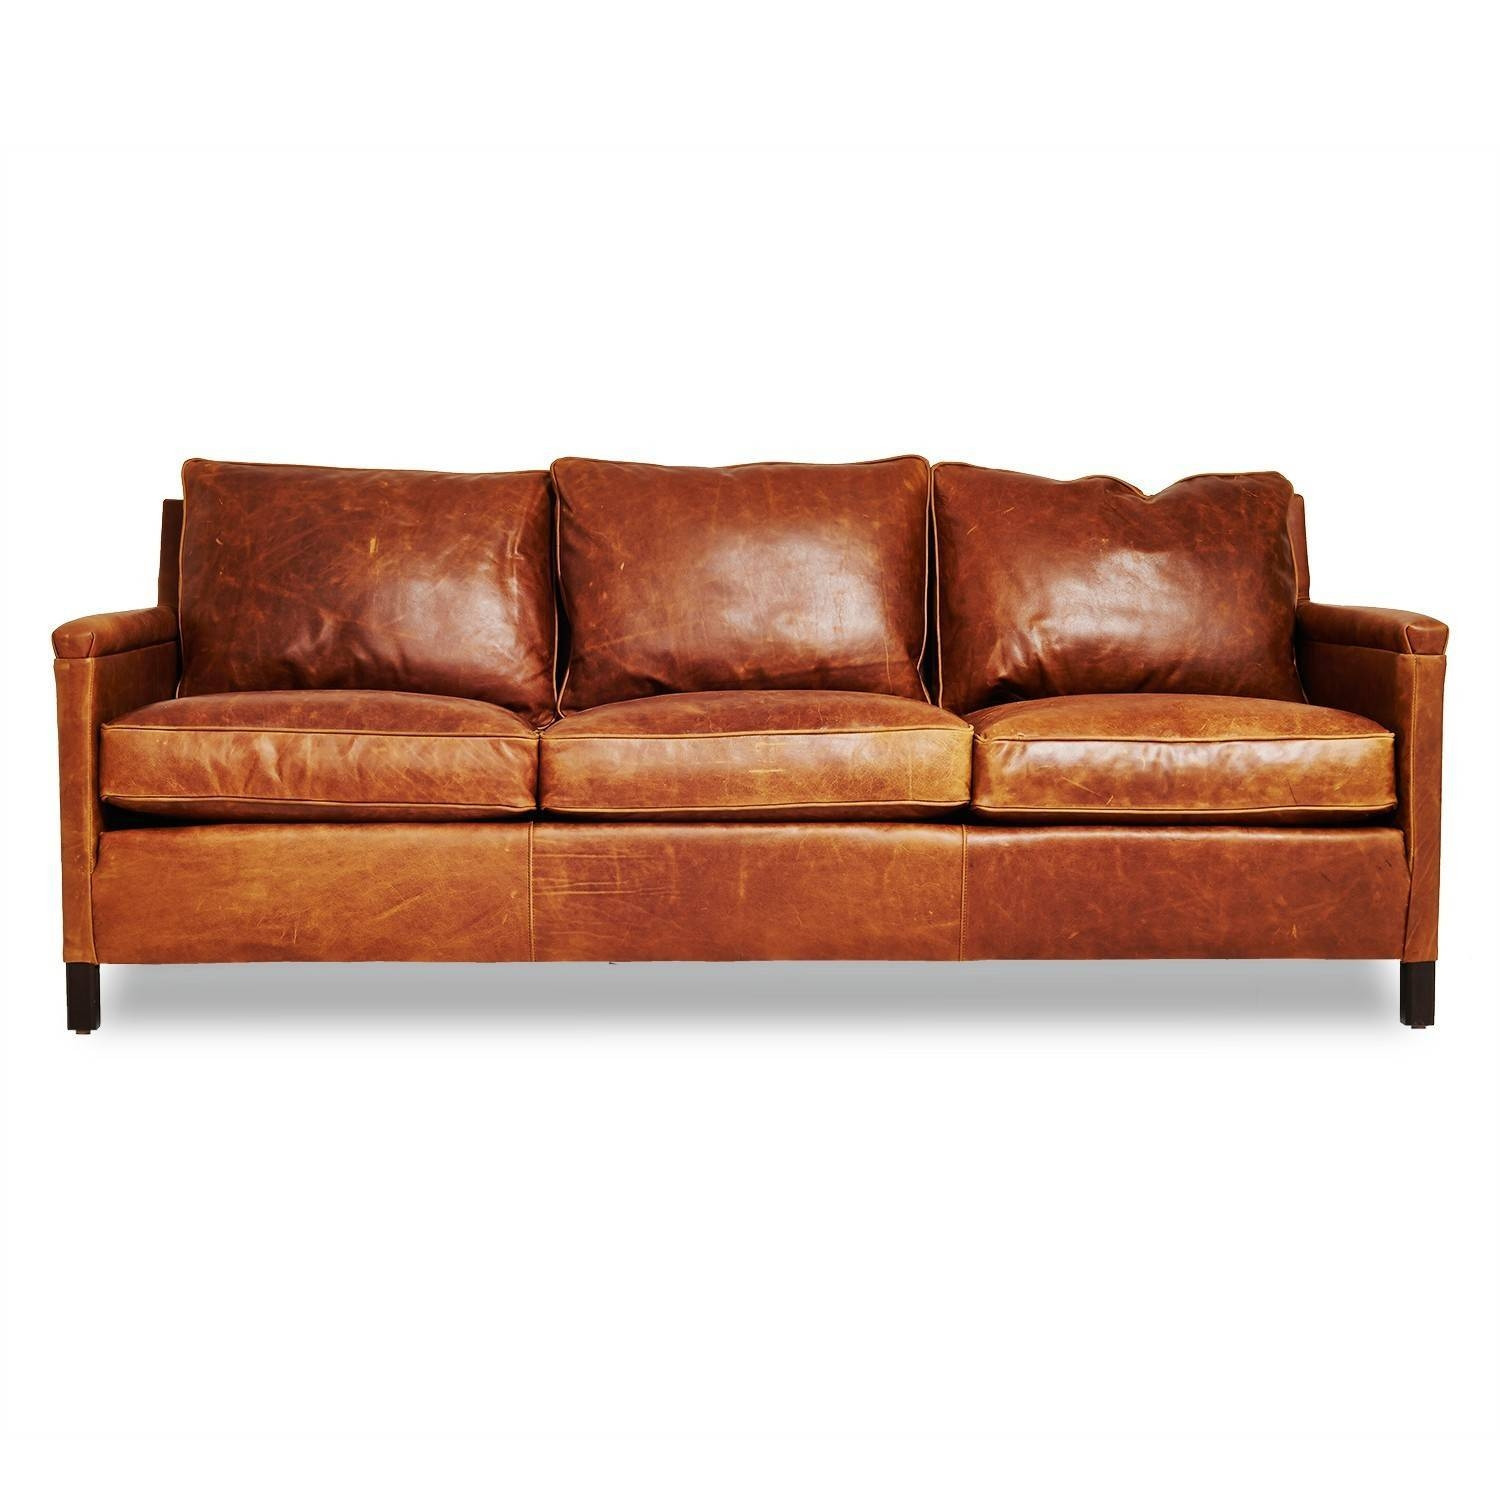 Irving Place Heston Leather Sofa – Abc Carpet & Home inside Light Tan Leather Sofas (Image 12 of 30)